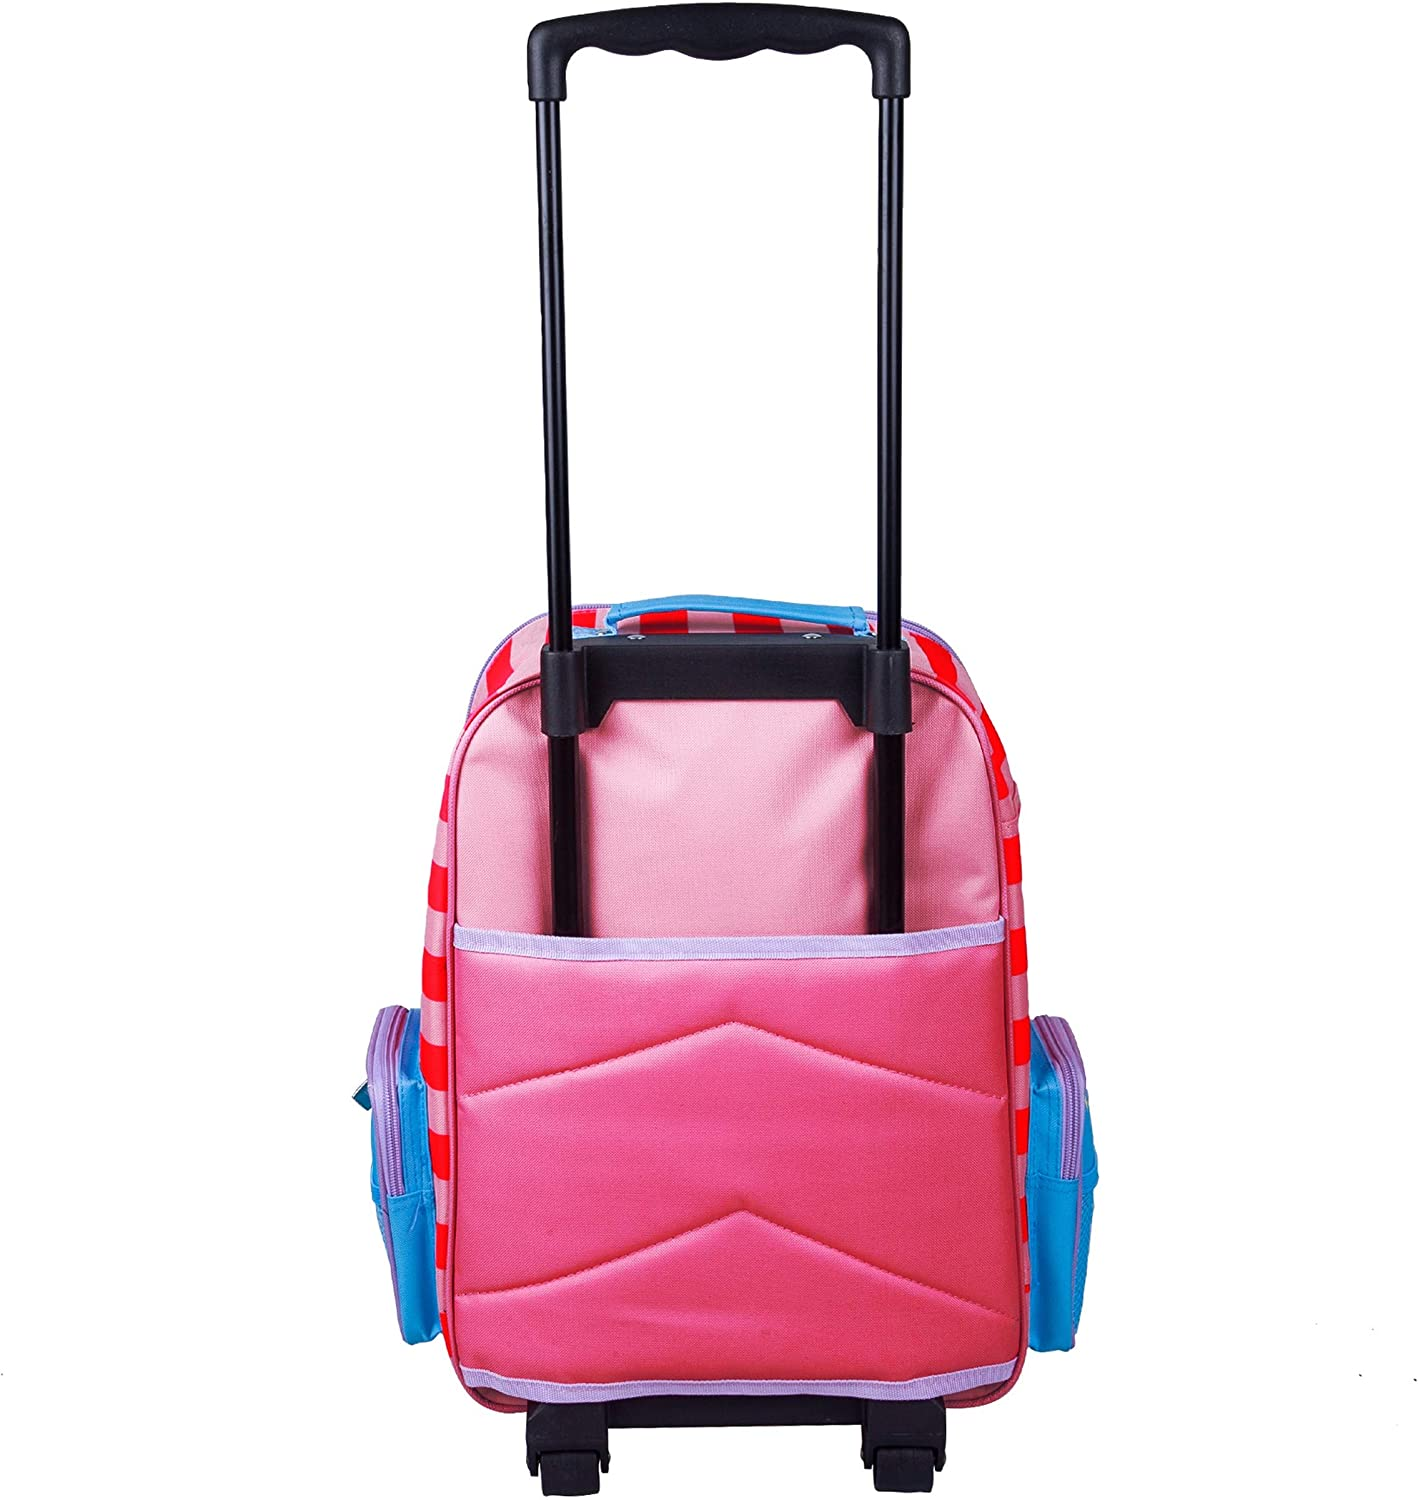 Luggage is Carry-On Size and Perfect for Overnight Travel Dinosaur Land Patterns Coordinate with Our Nap Mats and Duffel Bags Wildkin Kids Rolling Suitcase for Boys and Girls